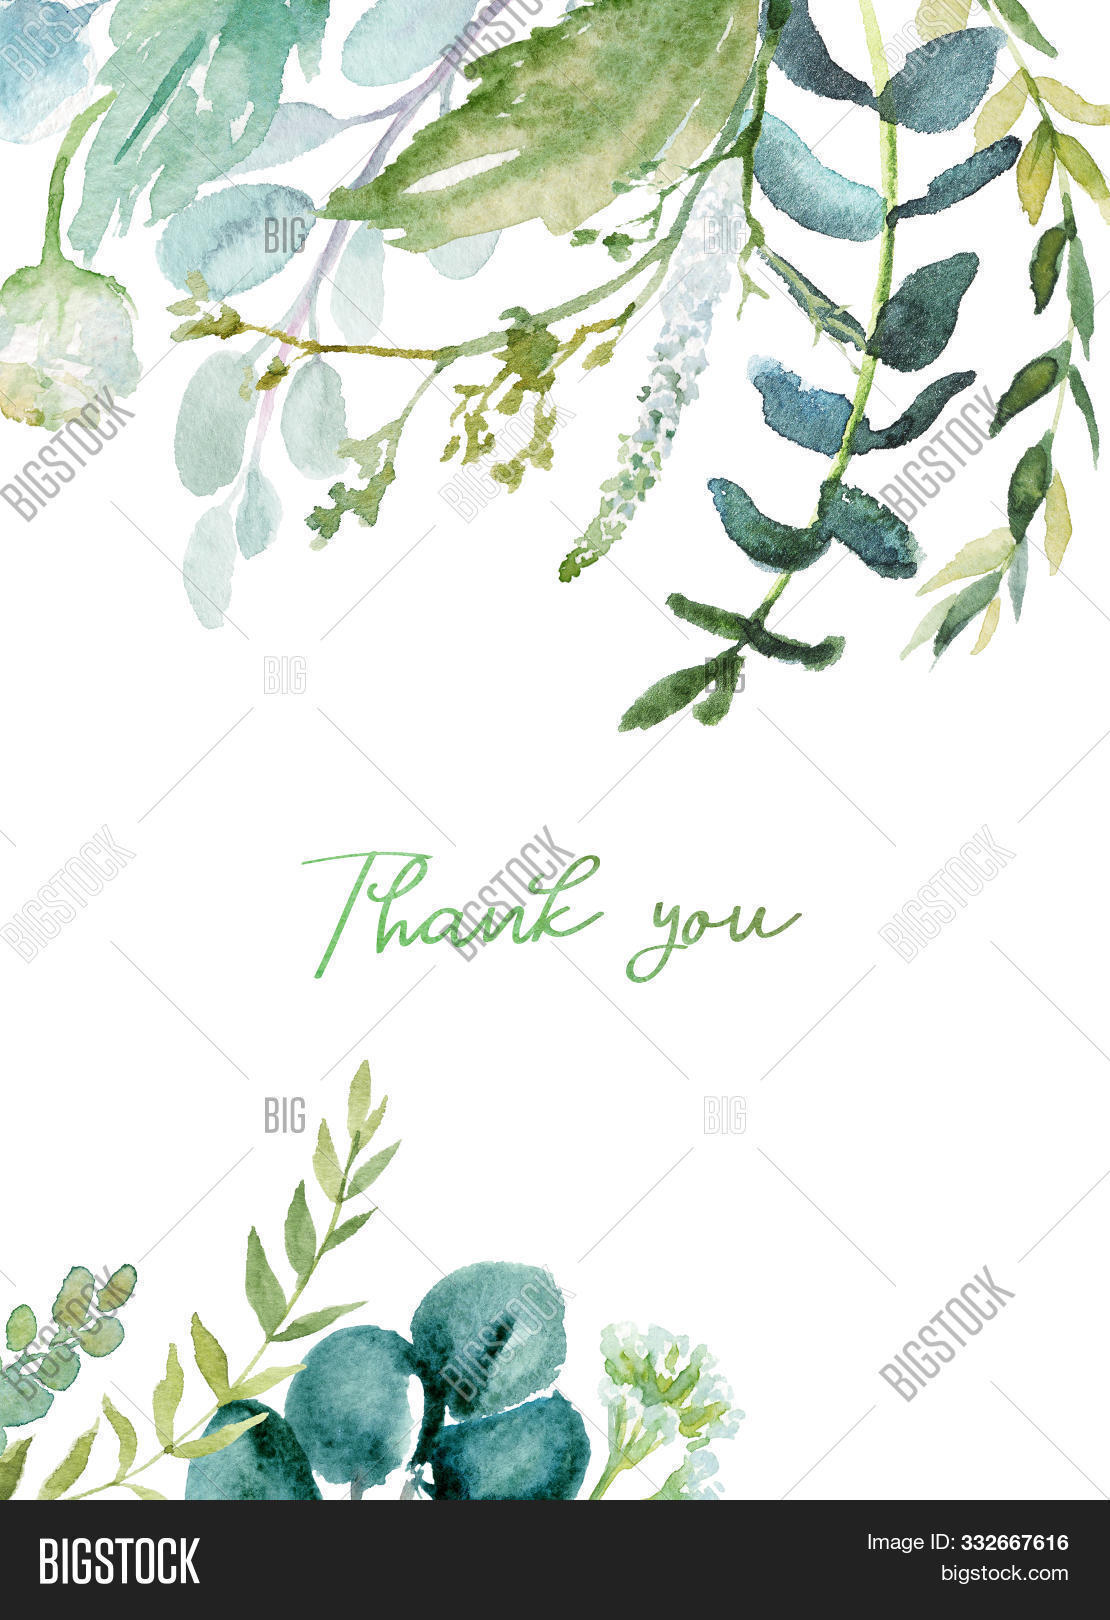 Watercolor Floral Image Photo Free Trial Bigstock